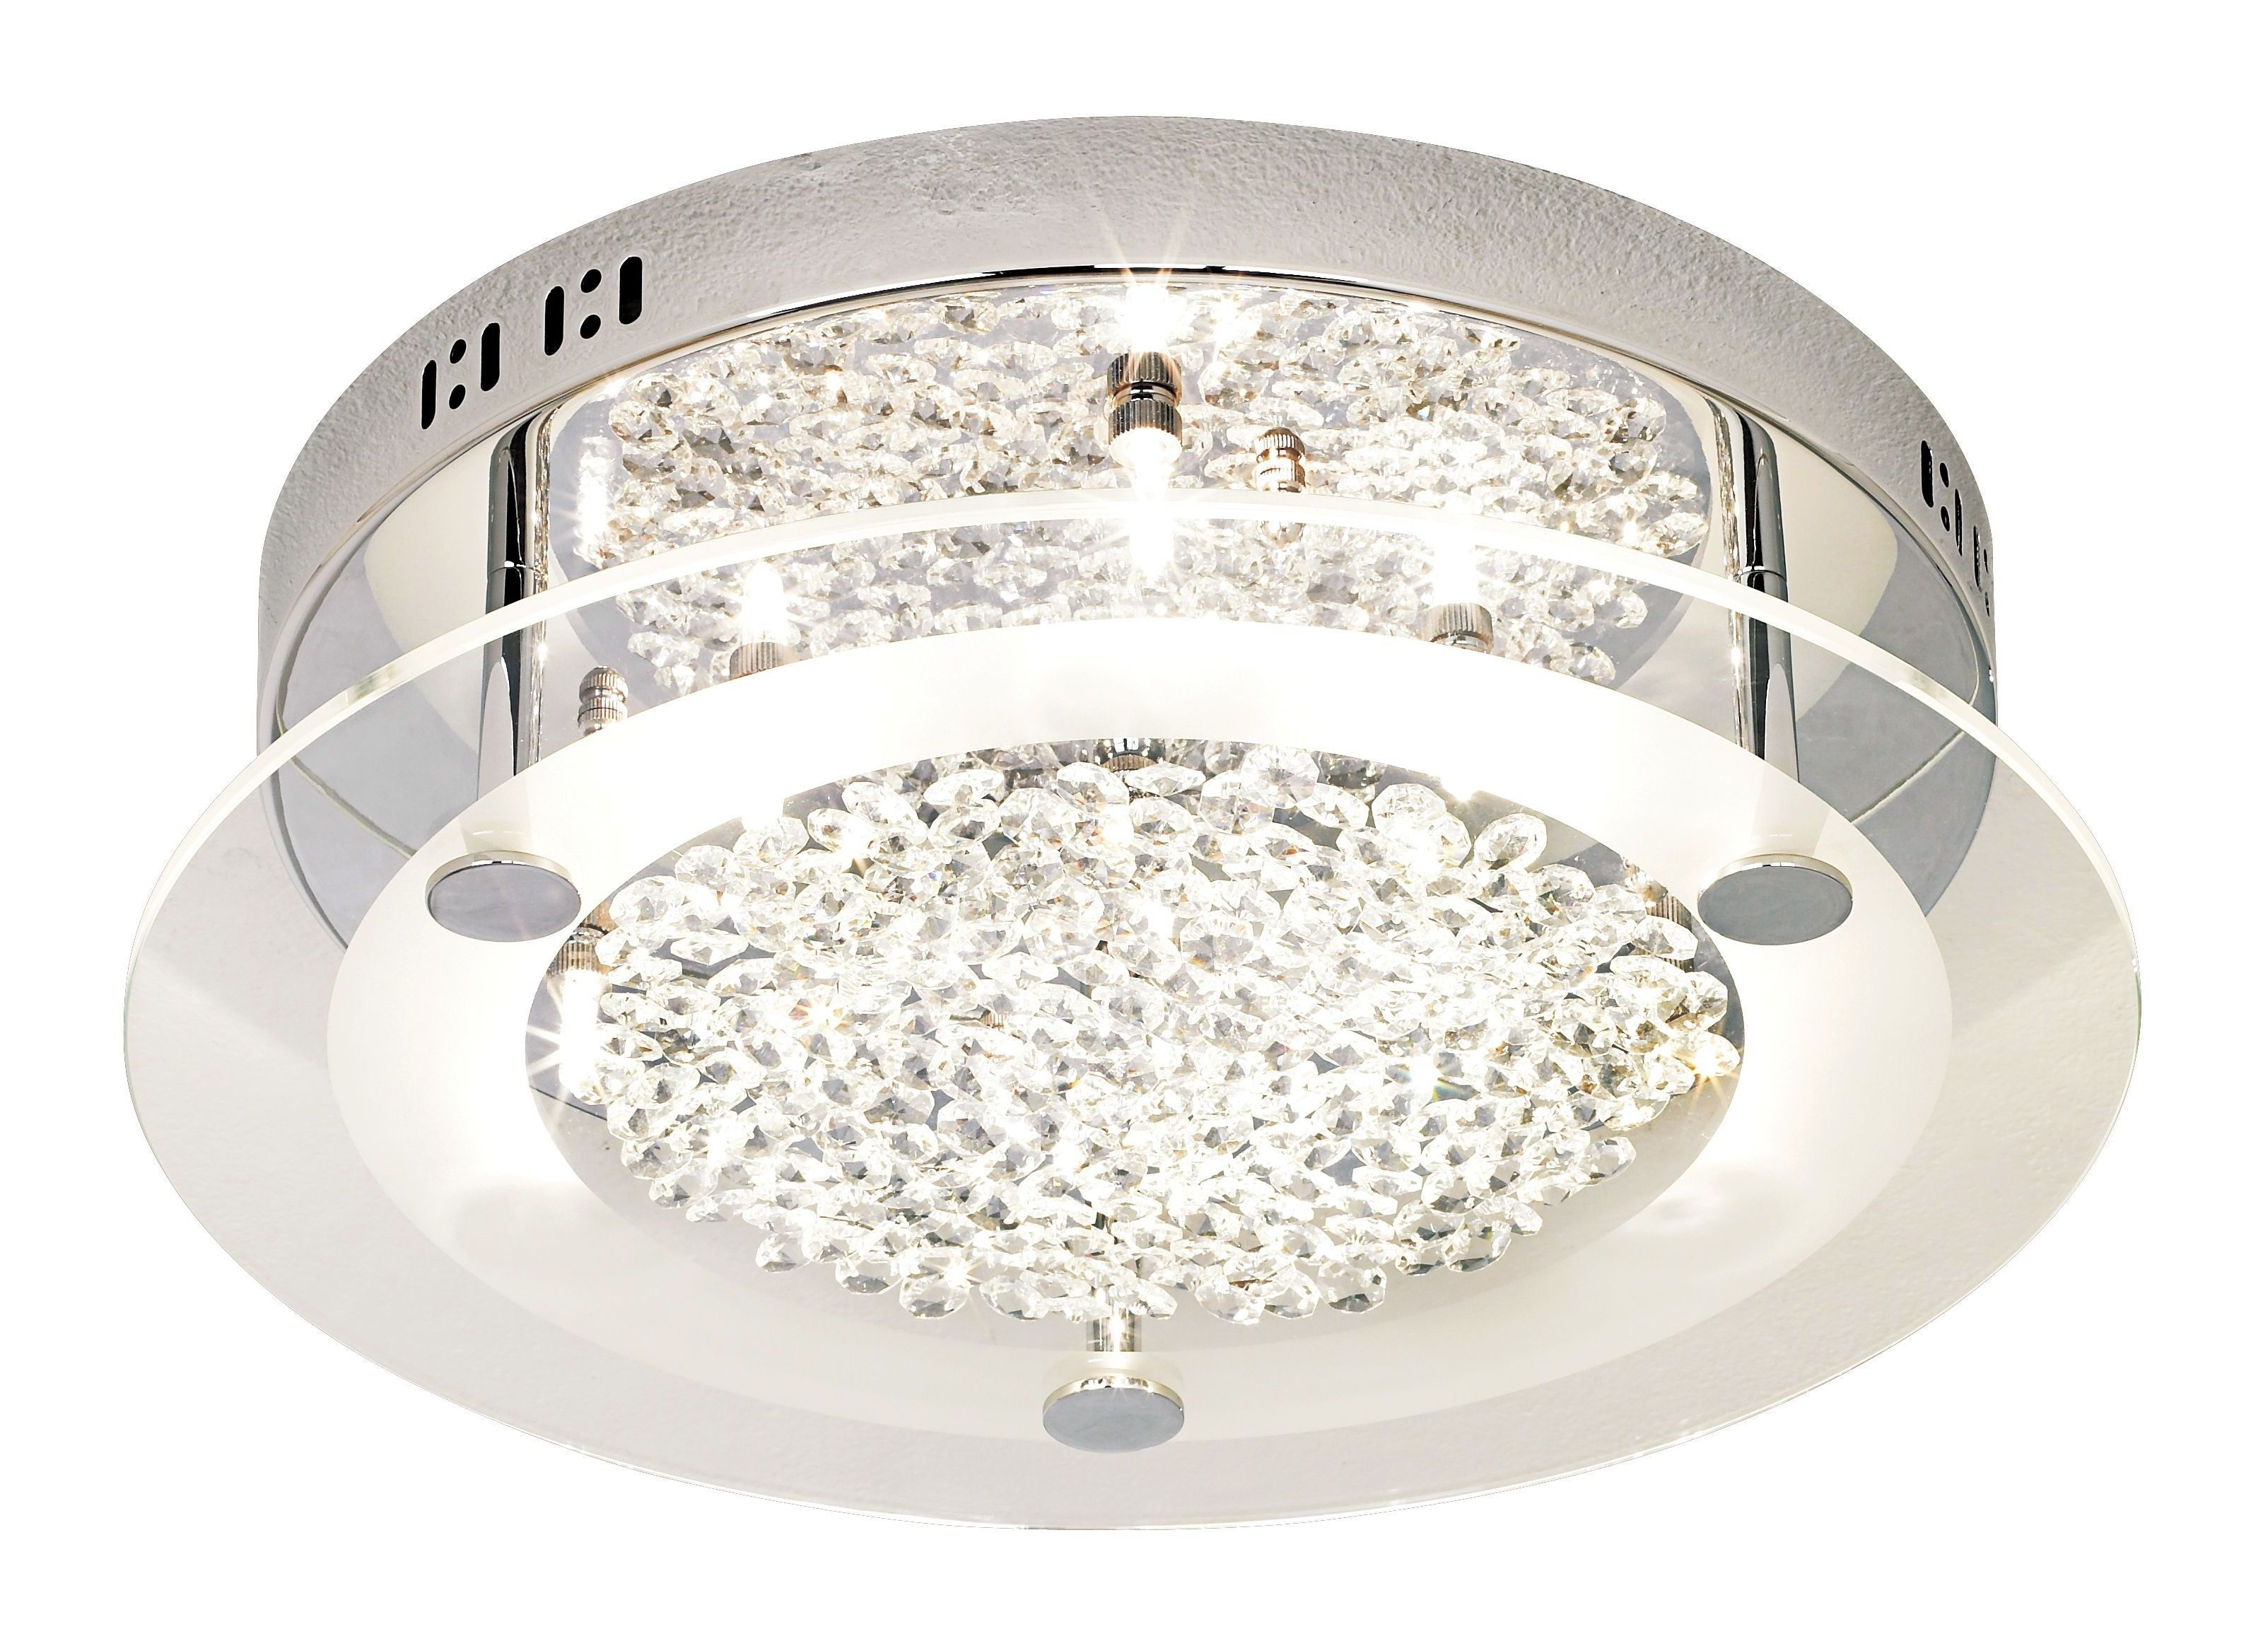 Light Fixtures For Bathroom Ceiling Small Bathroom Ceiling Light